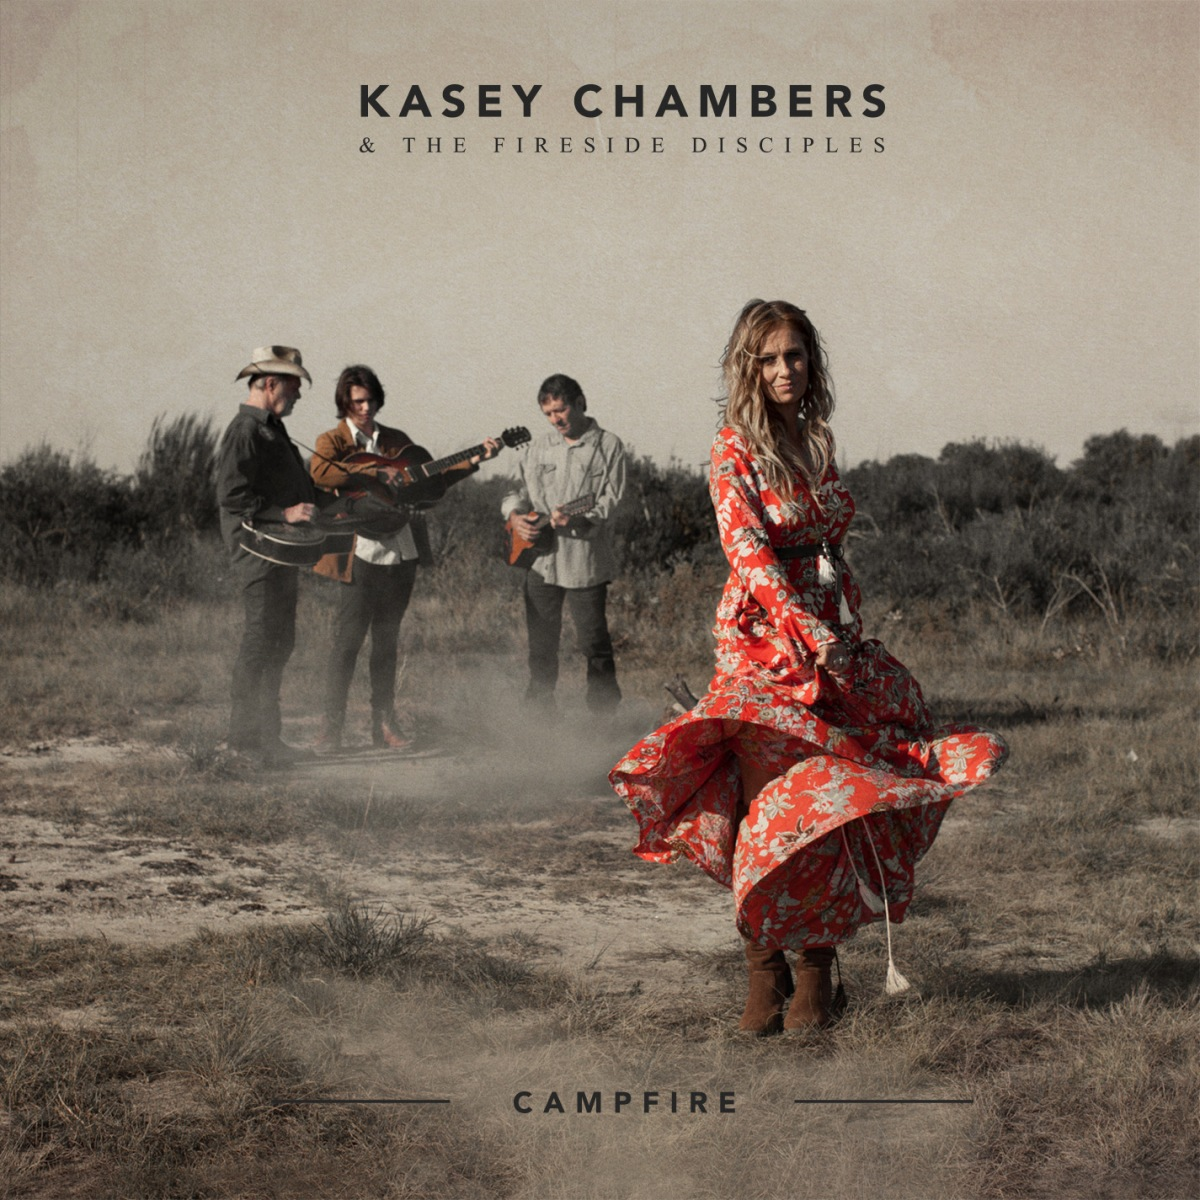 ALBUM REVIEW: Kasey Chambers & The Fireside Disciples – Campfire